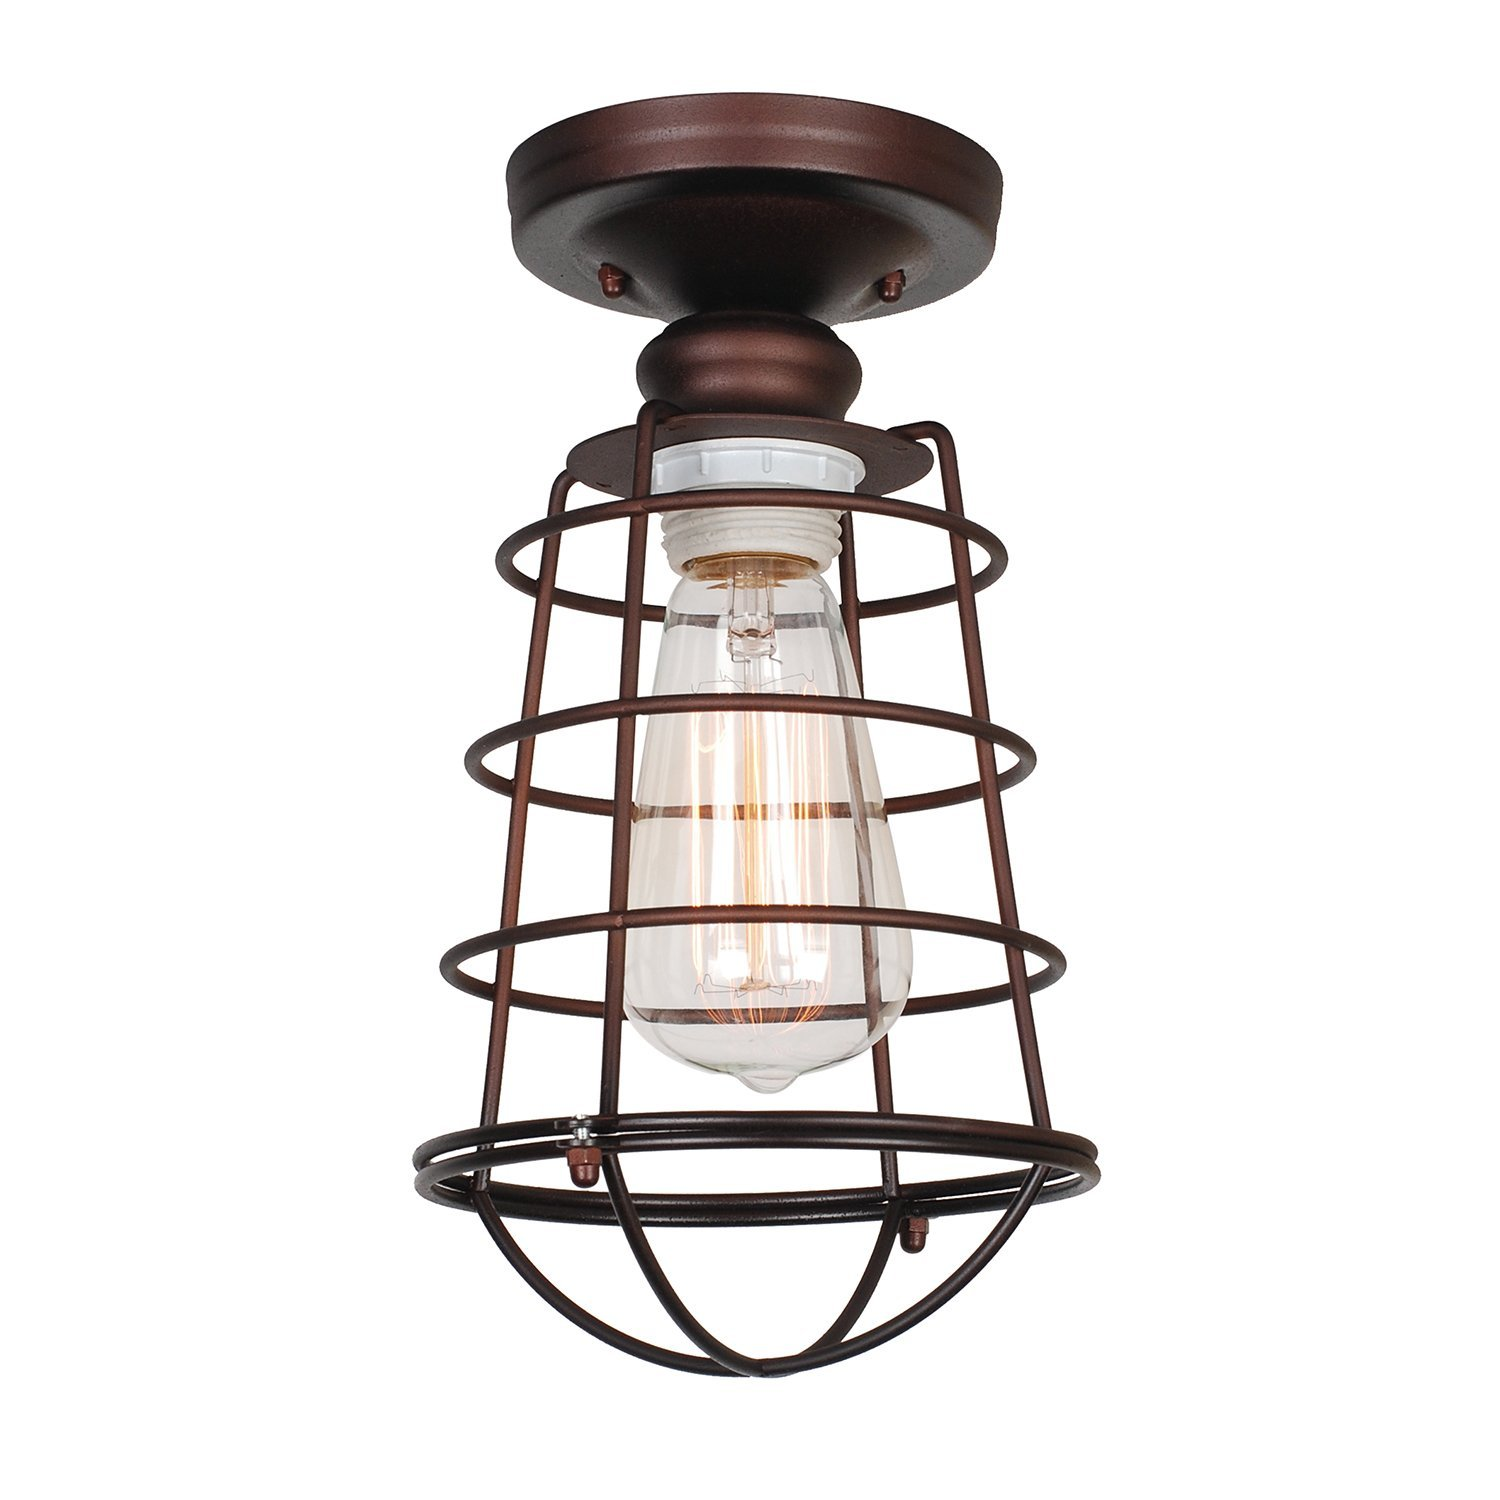 Design House Ajax 1-Light Ceiling Mount Industrial Light, Coffee Bronze Finish - 519694